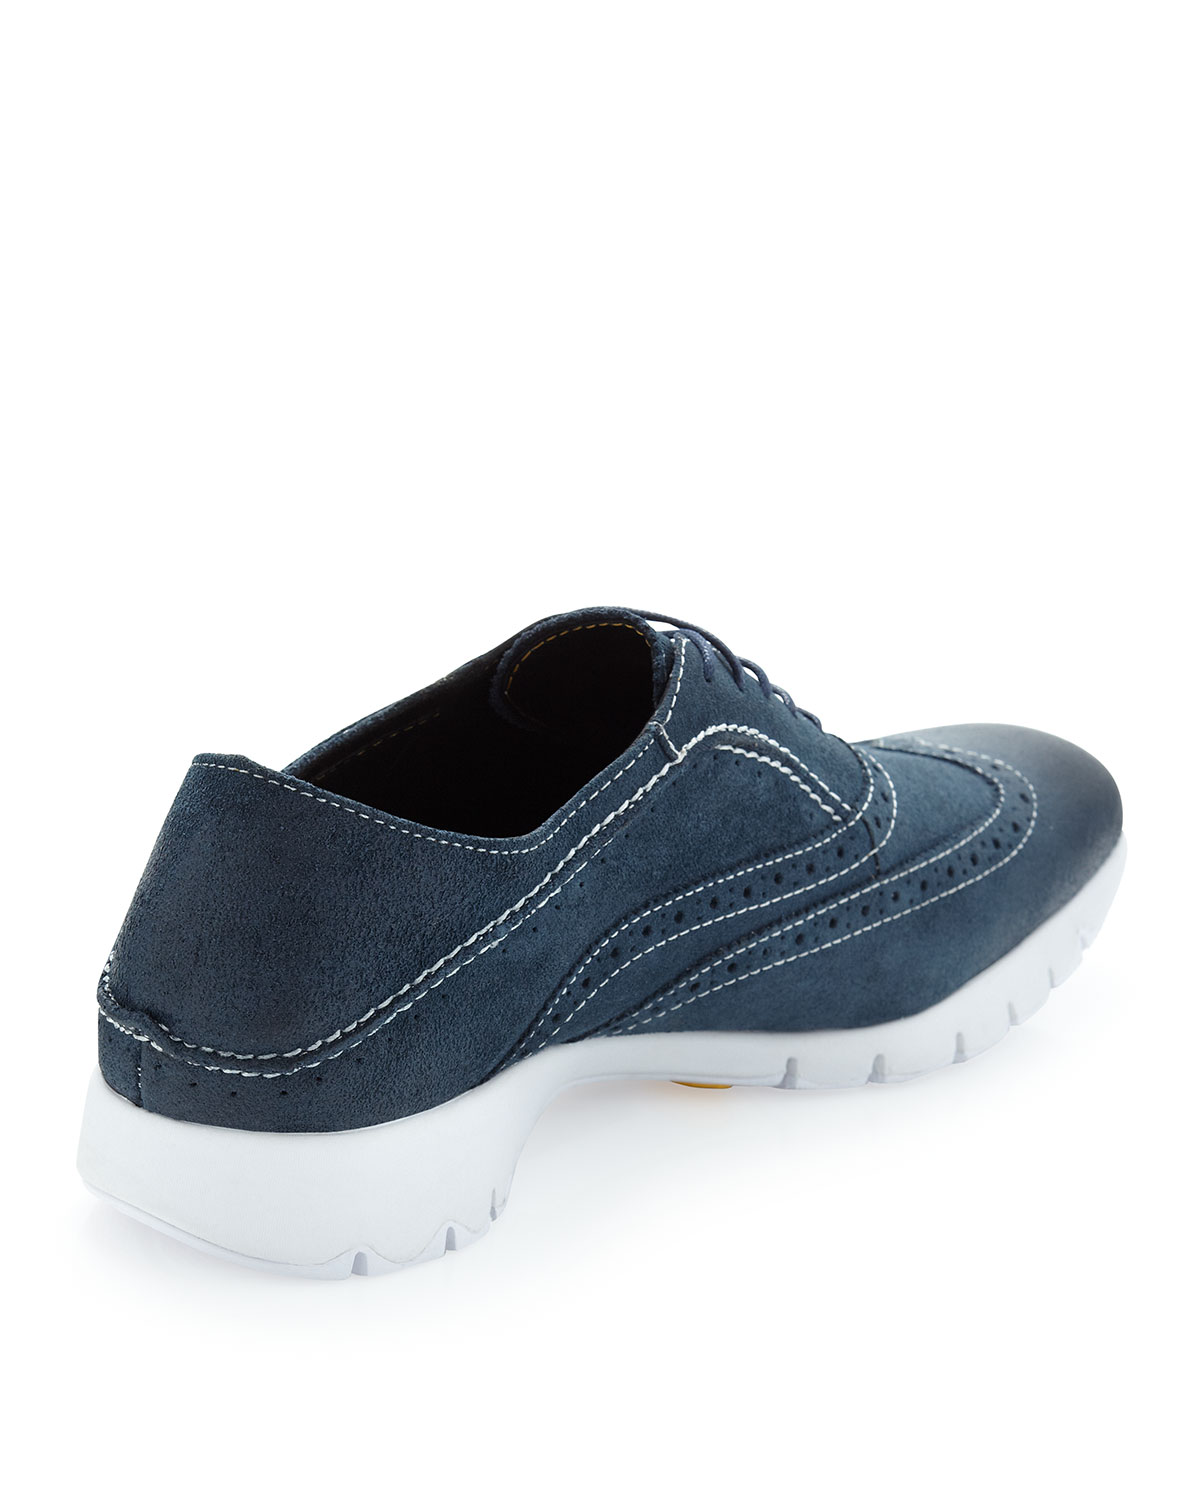 Hush Puppies Blue Suede Shoes